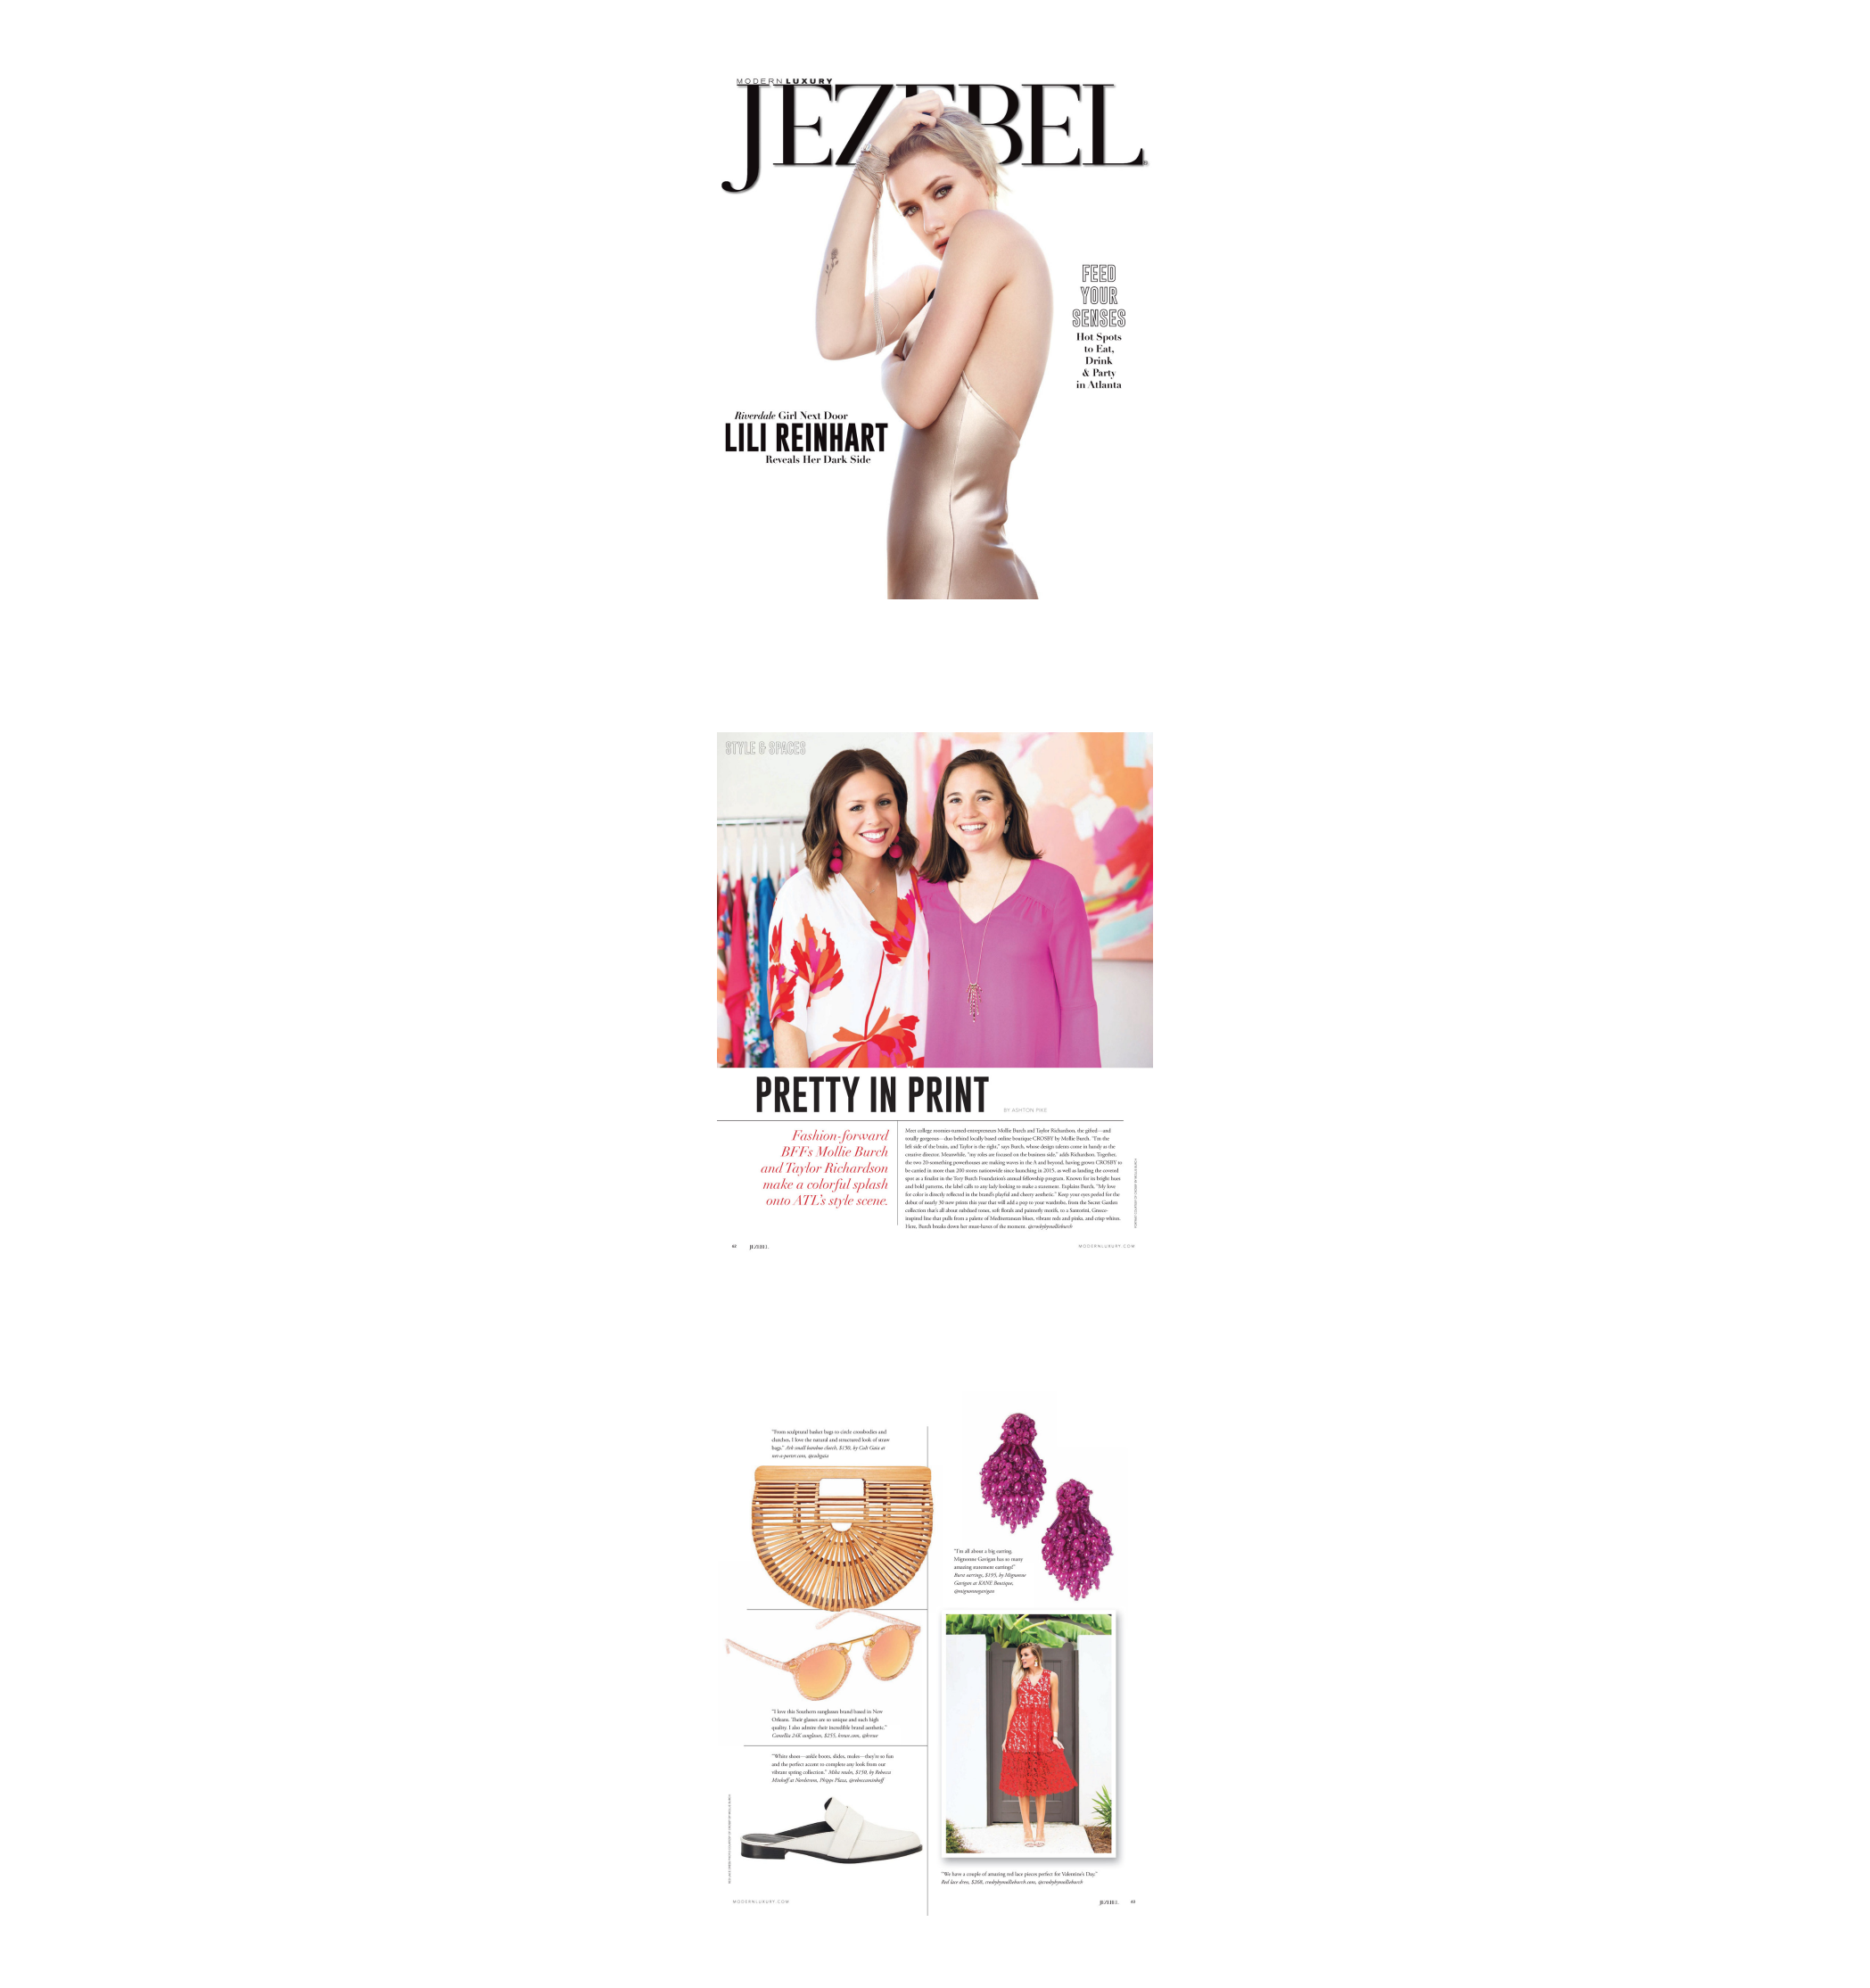 Jezebel | February 2018 | Cover, Style in Spaces, Pretty in Print magazine article pages